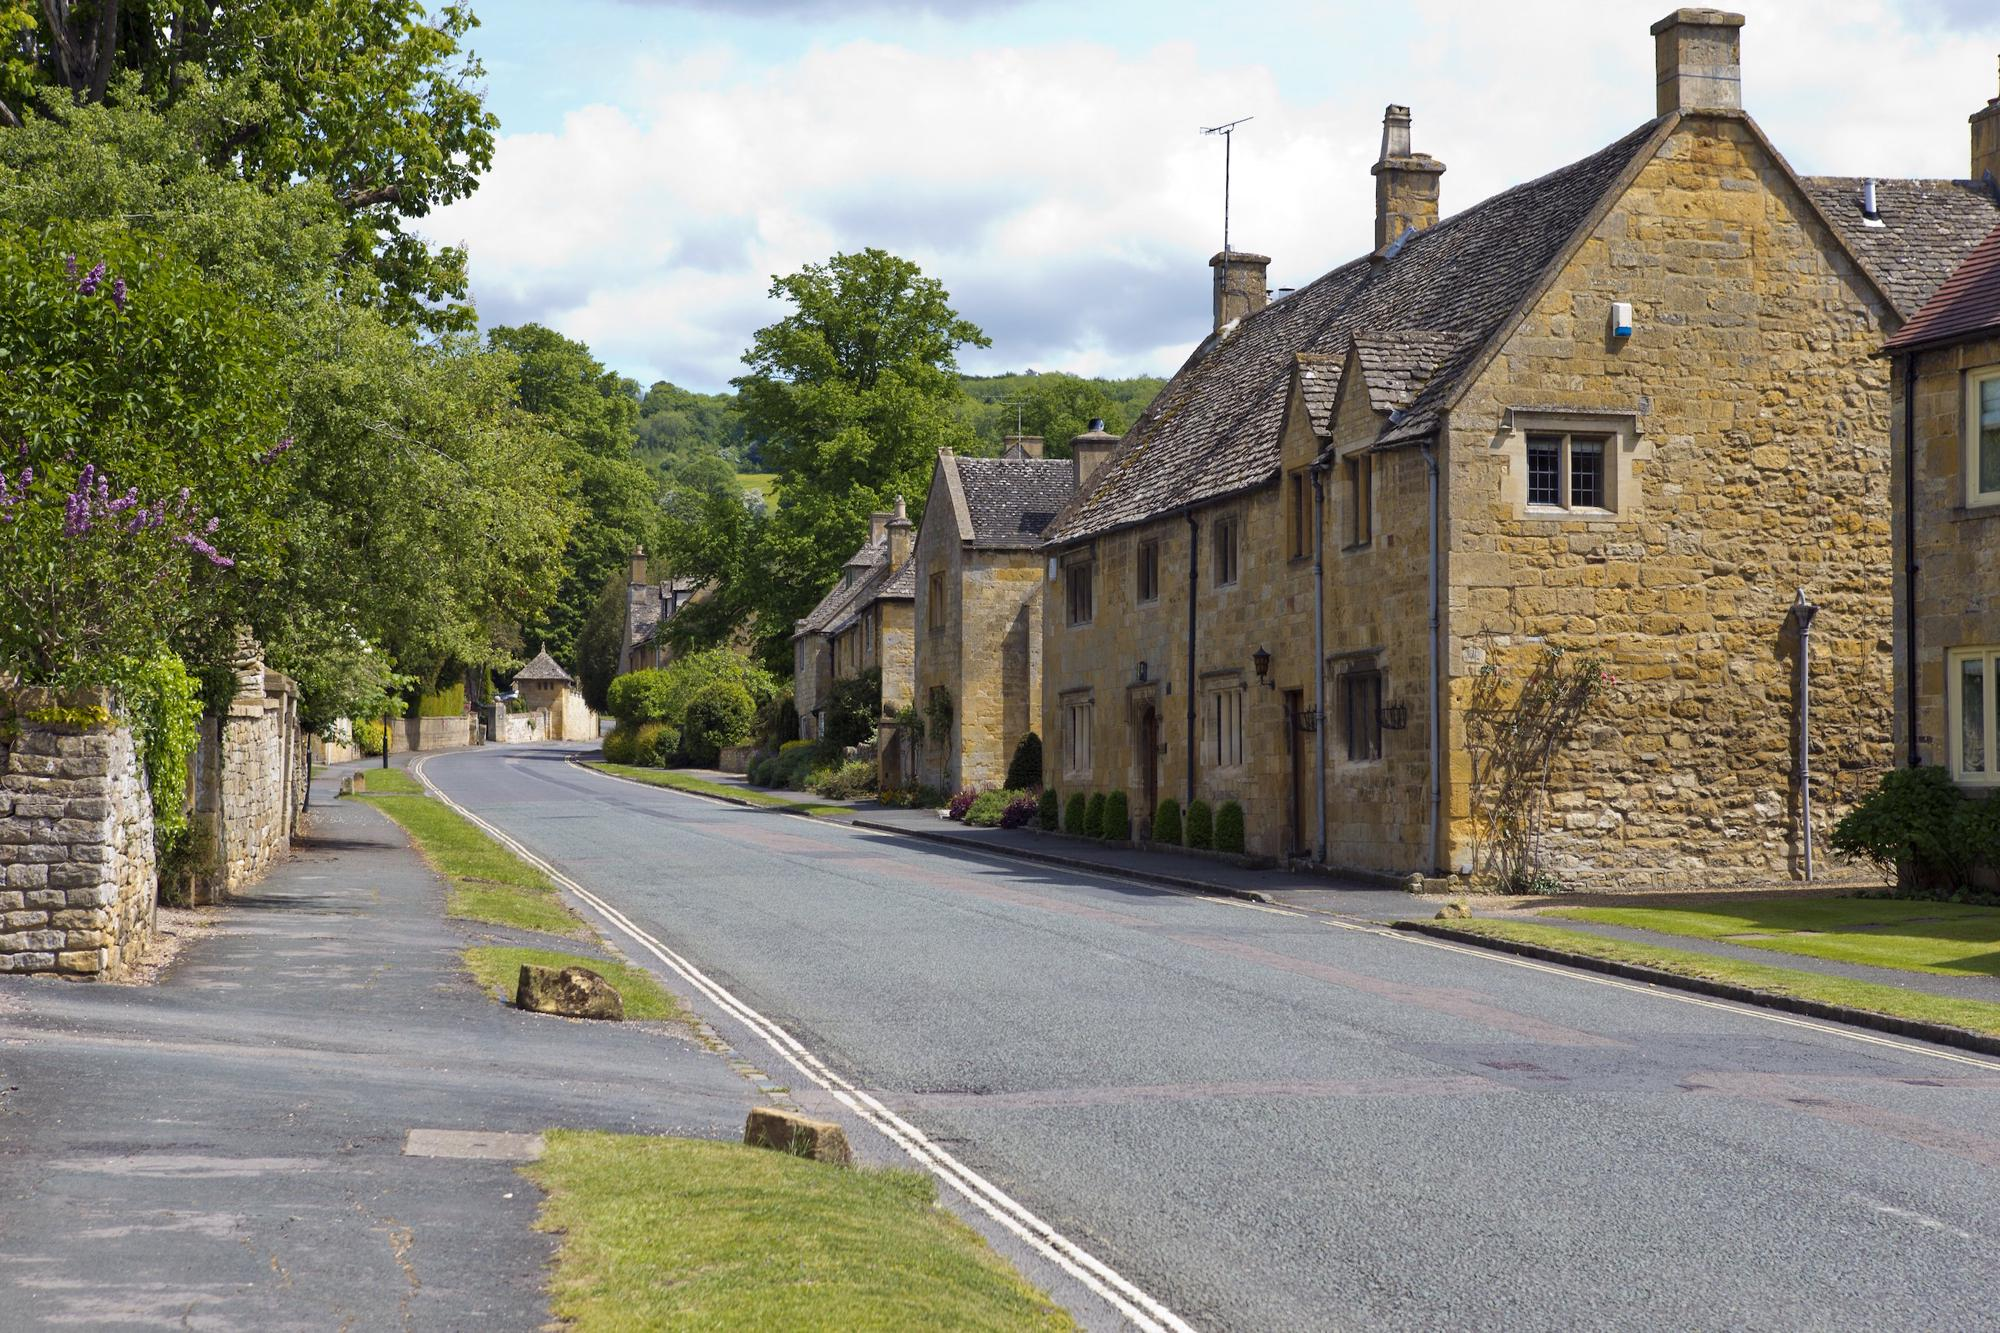 Stow-on-the-Wold Camping | Campsites in Stow-on-the-Wold